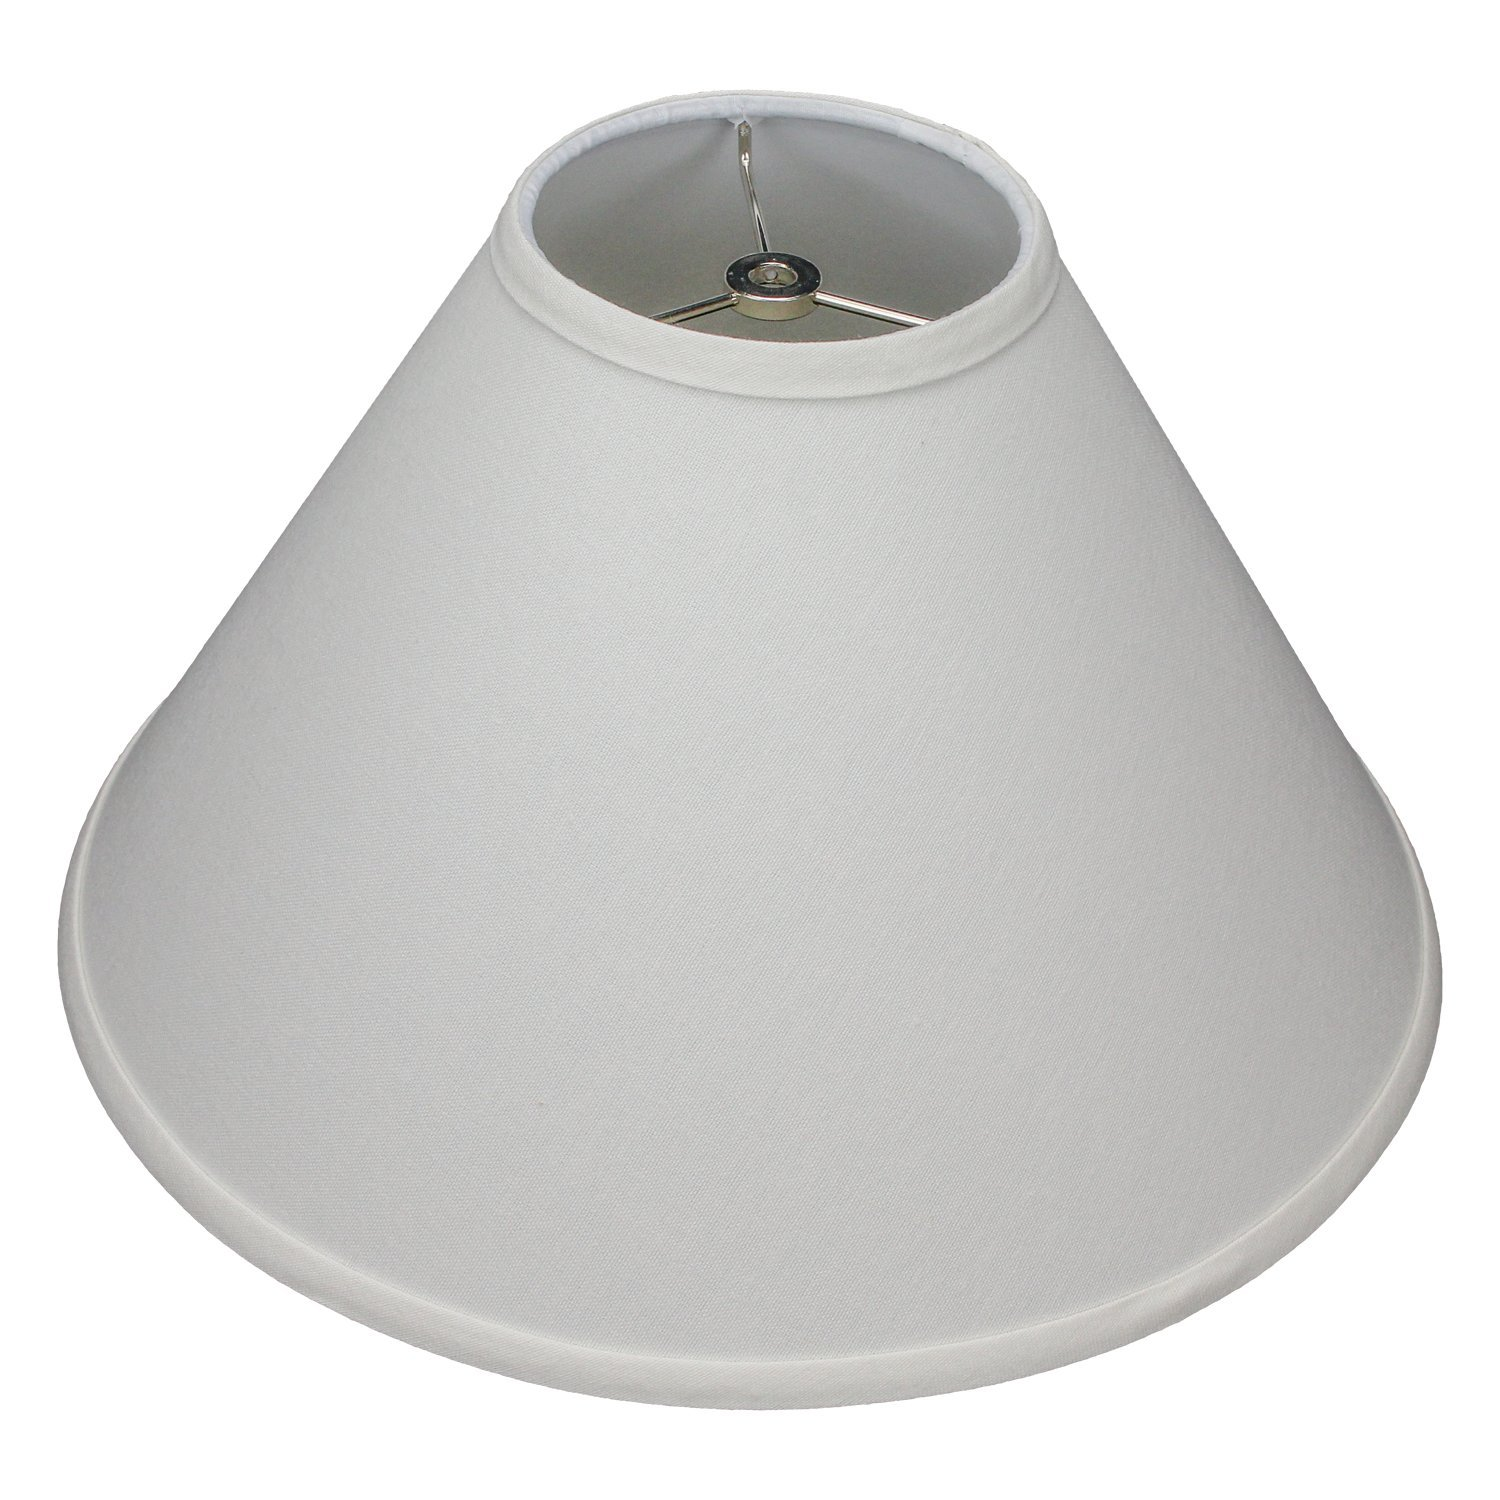 FenchelShades.com Lampshade 5'' Top Diameter x 15'' Bottom Diameter x 10'' Slant Height with Washer (Spider) Attachment for Lamps with a Harp (Cream)